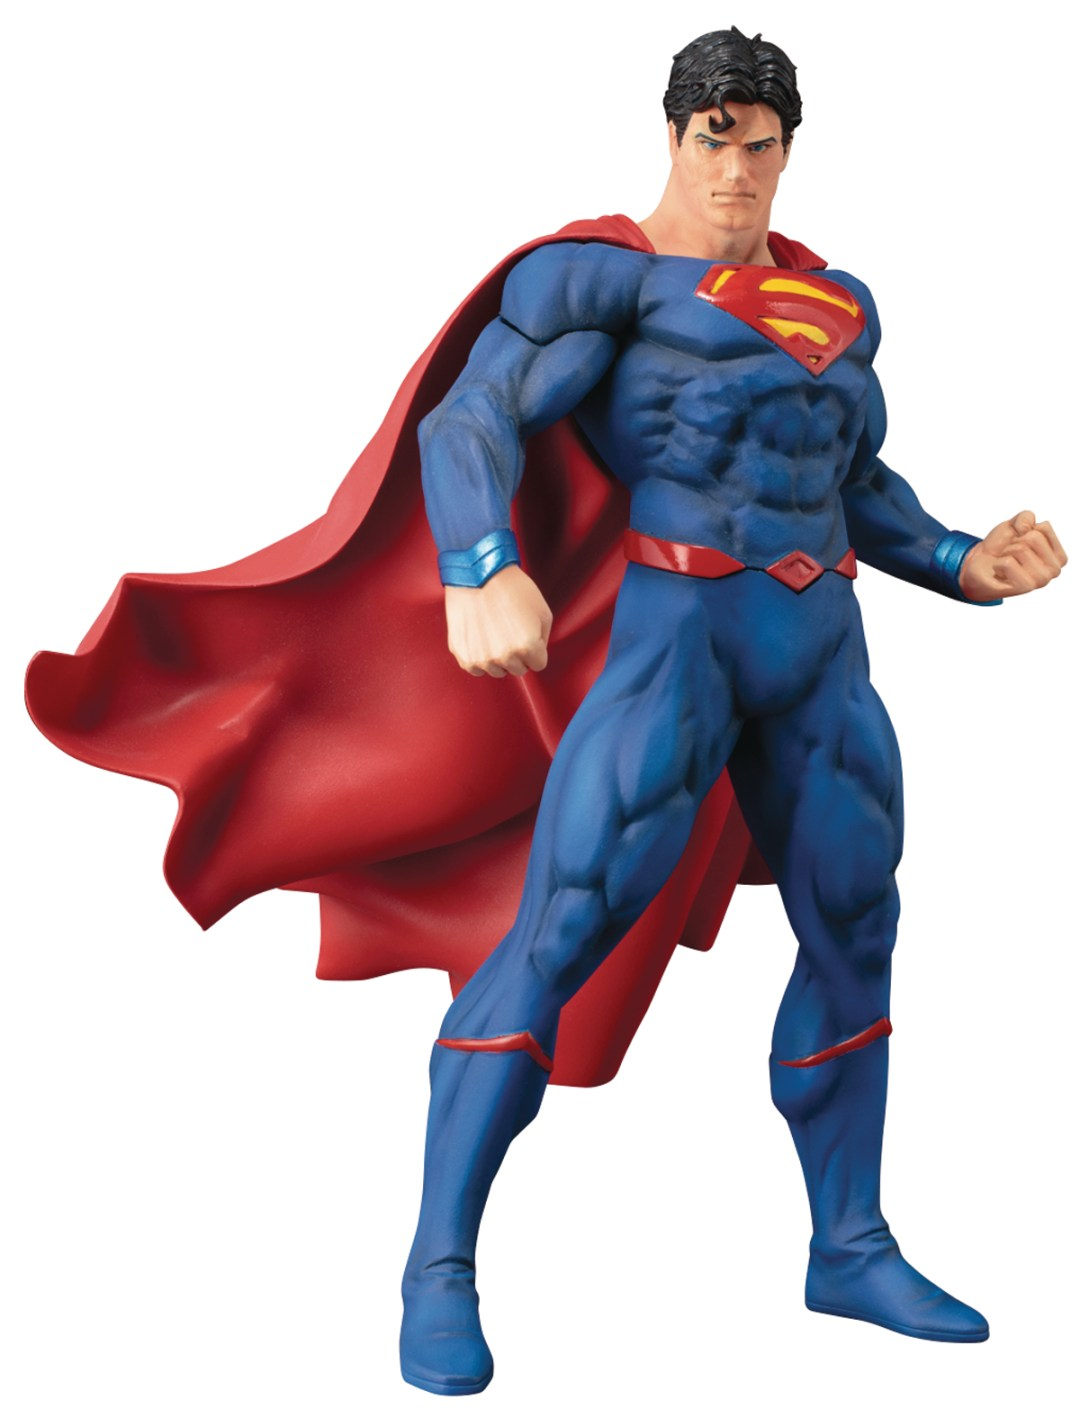 Superman Day - June 12